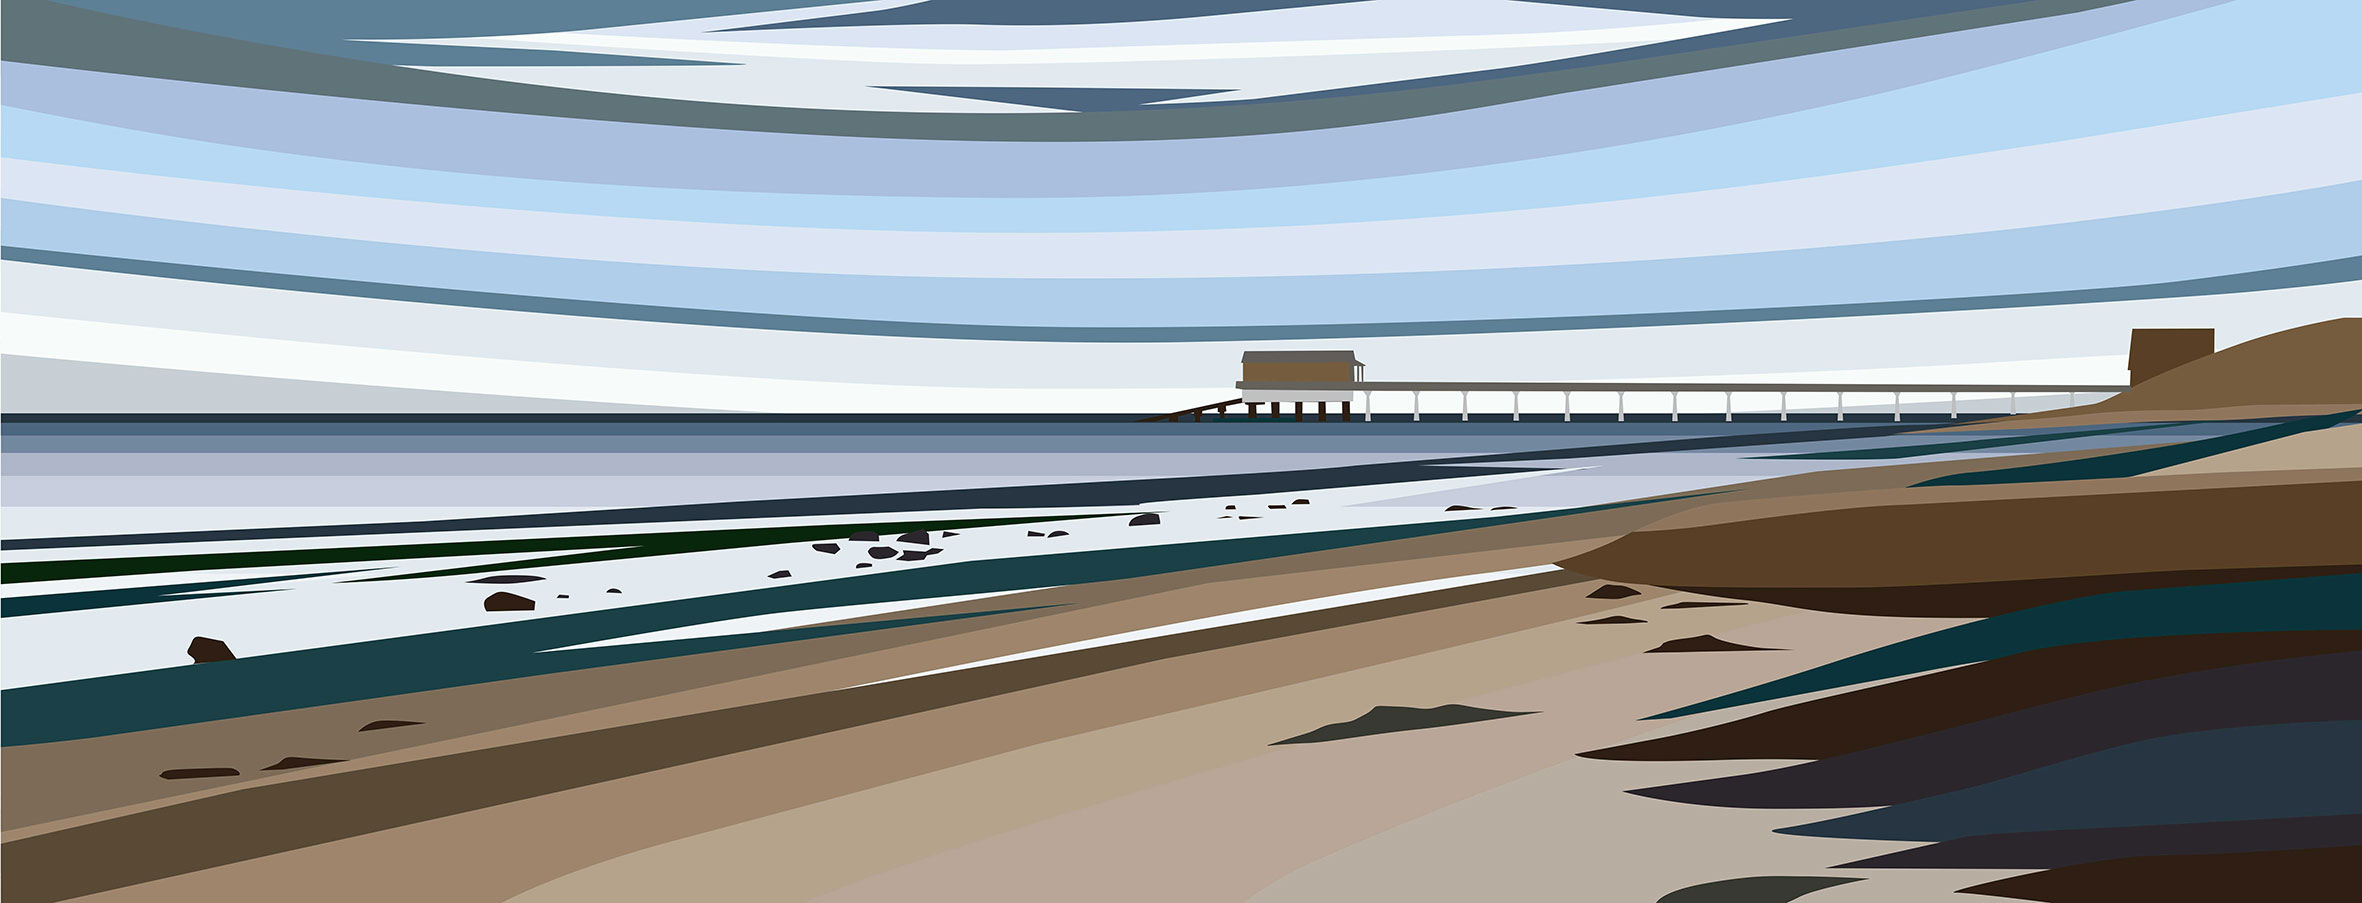 Bembridge Beach with Lifeboat, Isle of Wight. 2019